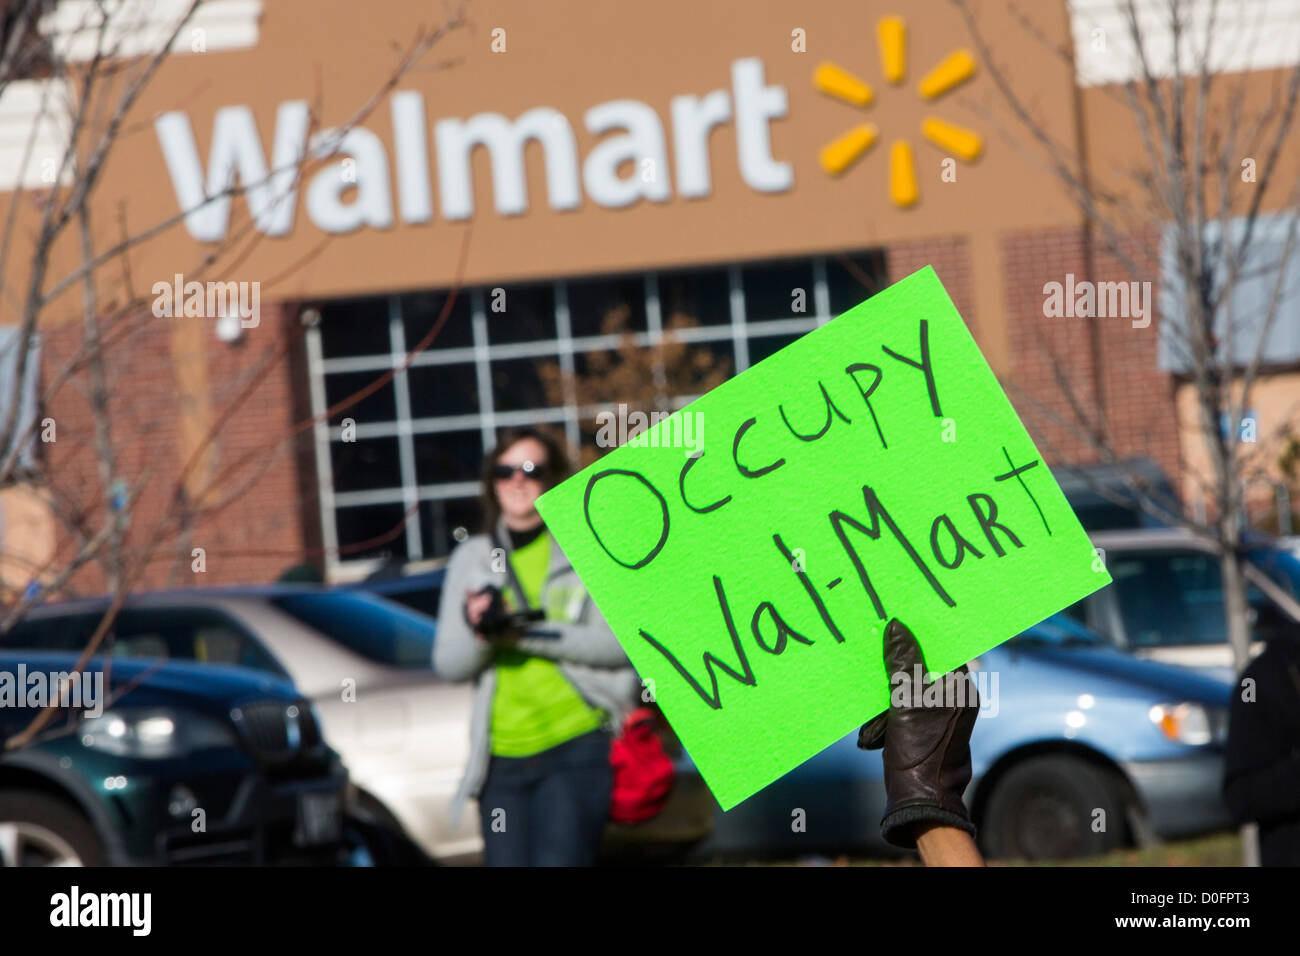 Working Conditions Stock Photos Images Car Stereo Wiring Harnesses Page 5 Walmart Demonstrators Protest Against At Image